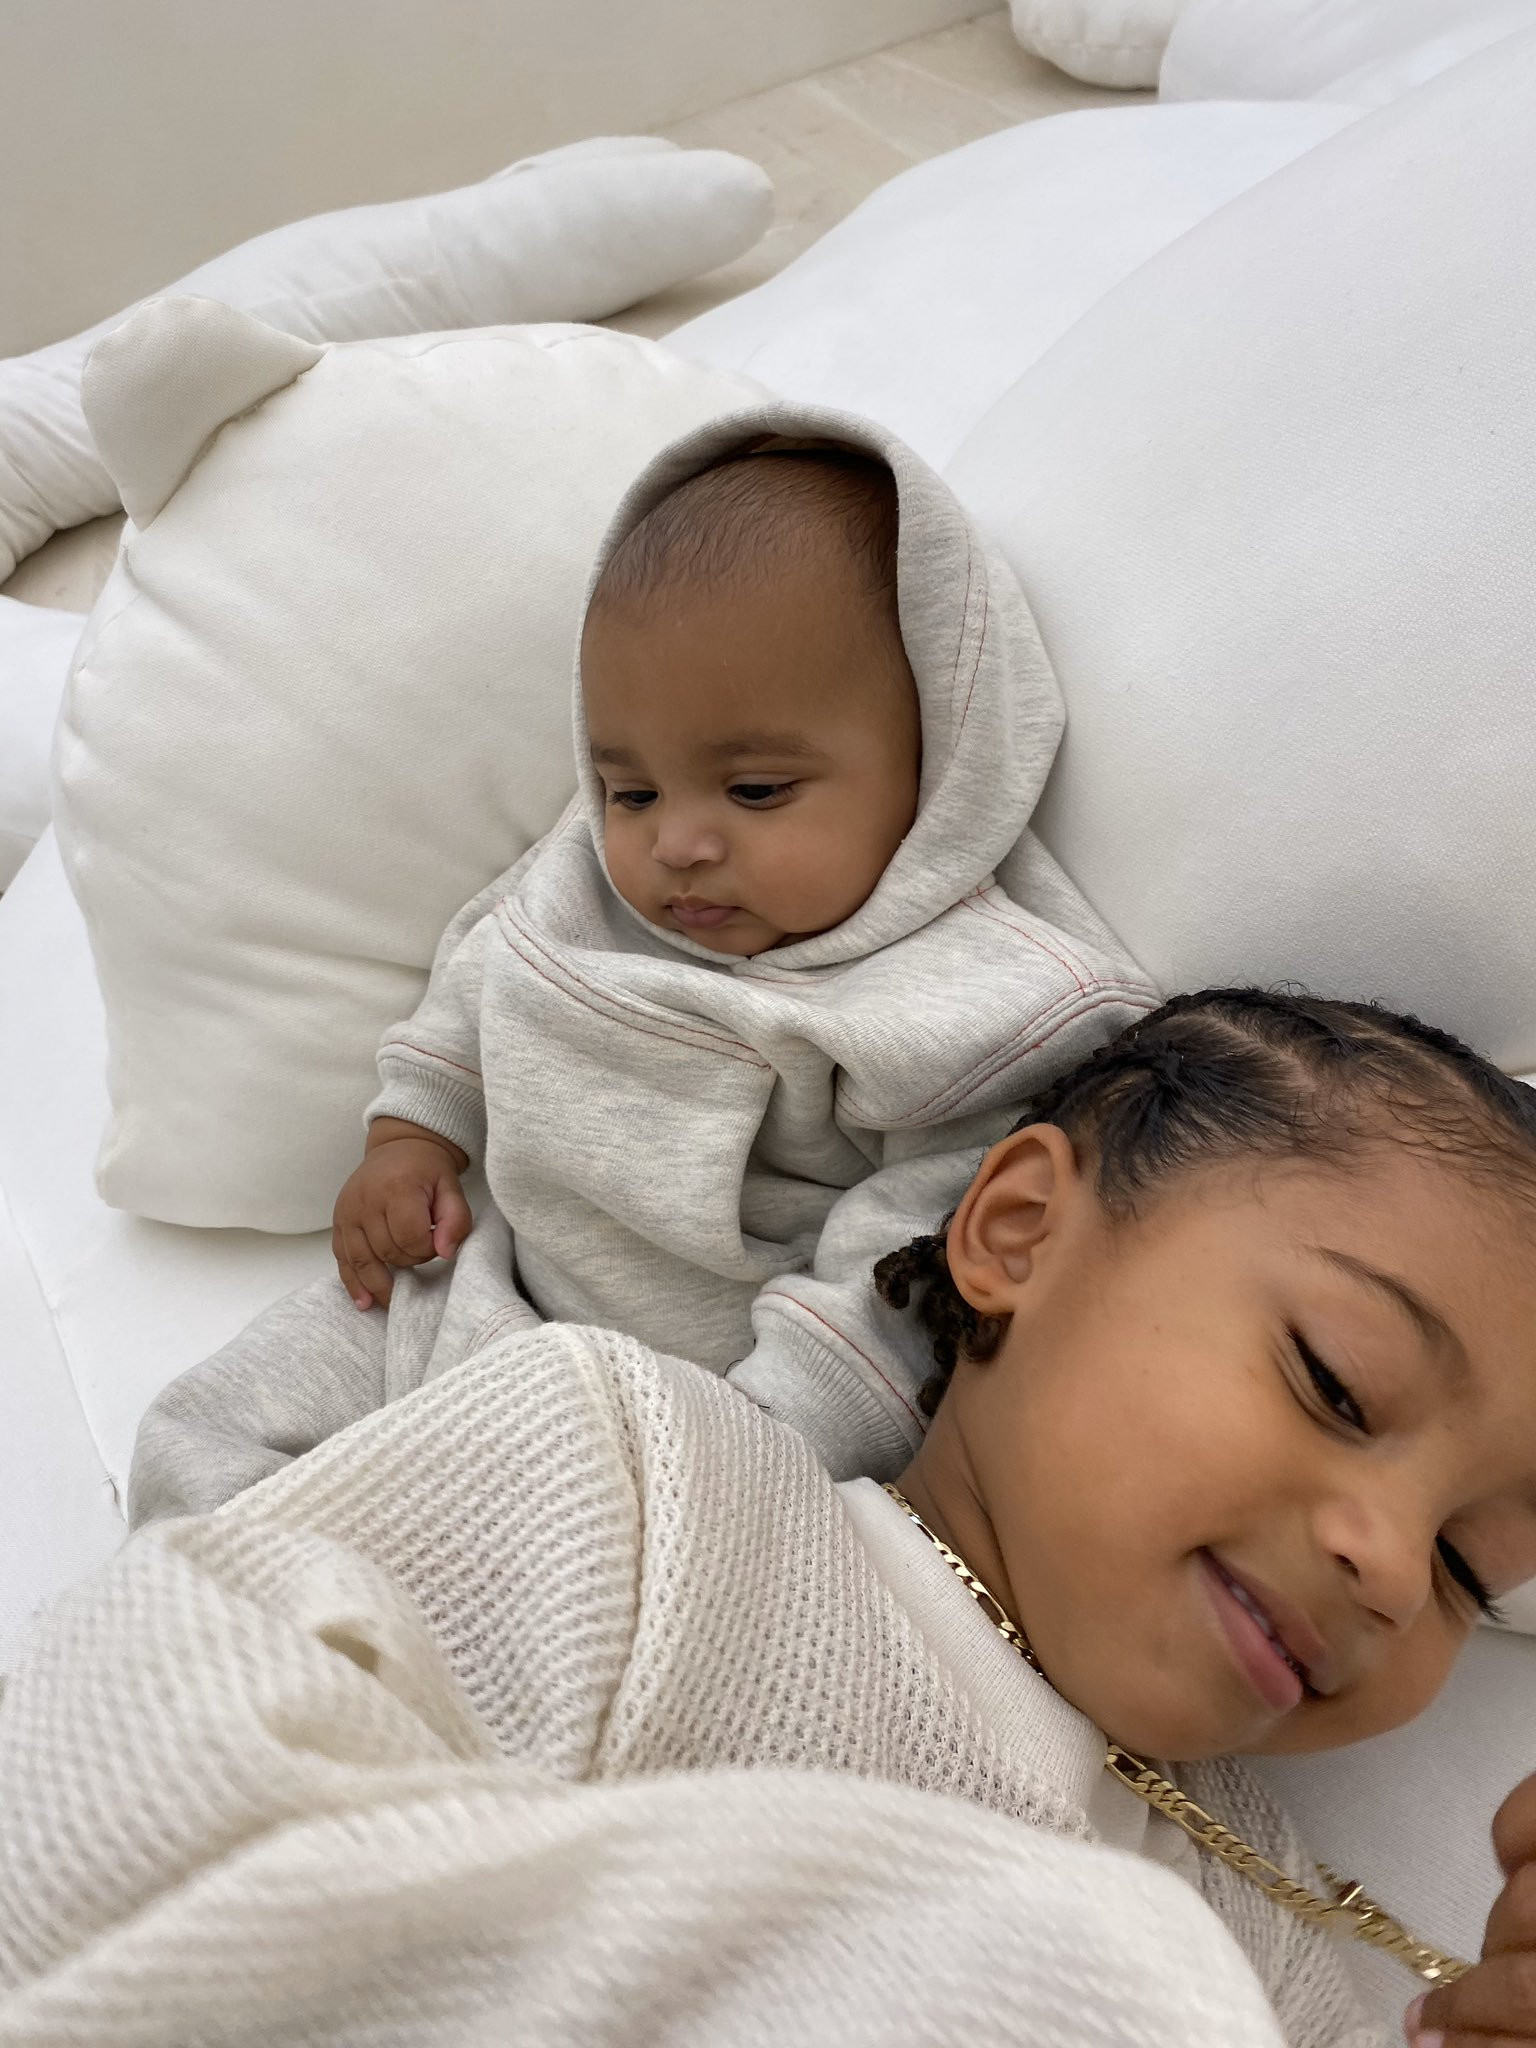 Kim Kardashian Shares Adorable New Photos Of Her Sons